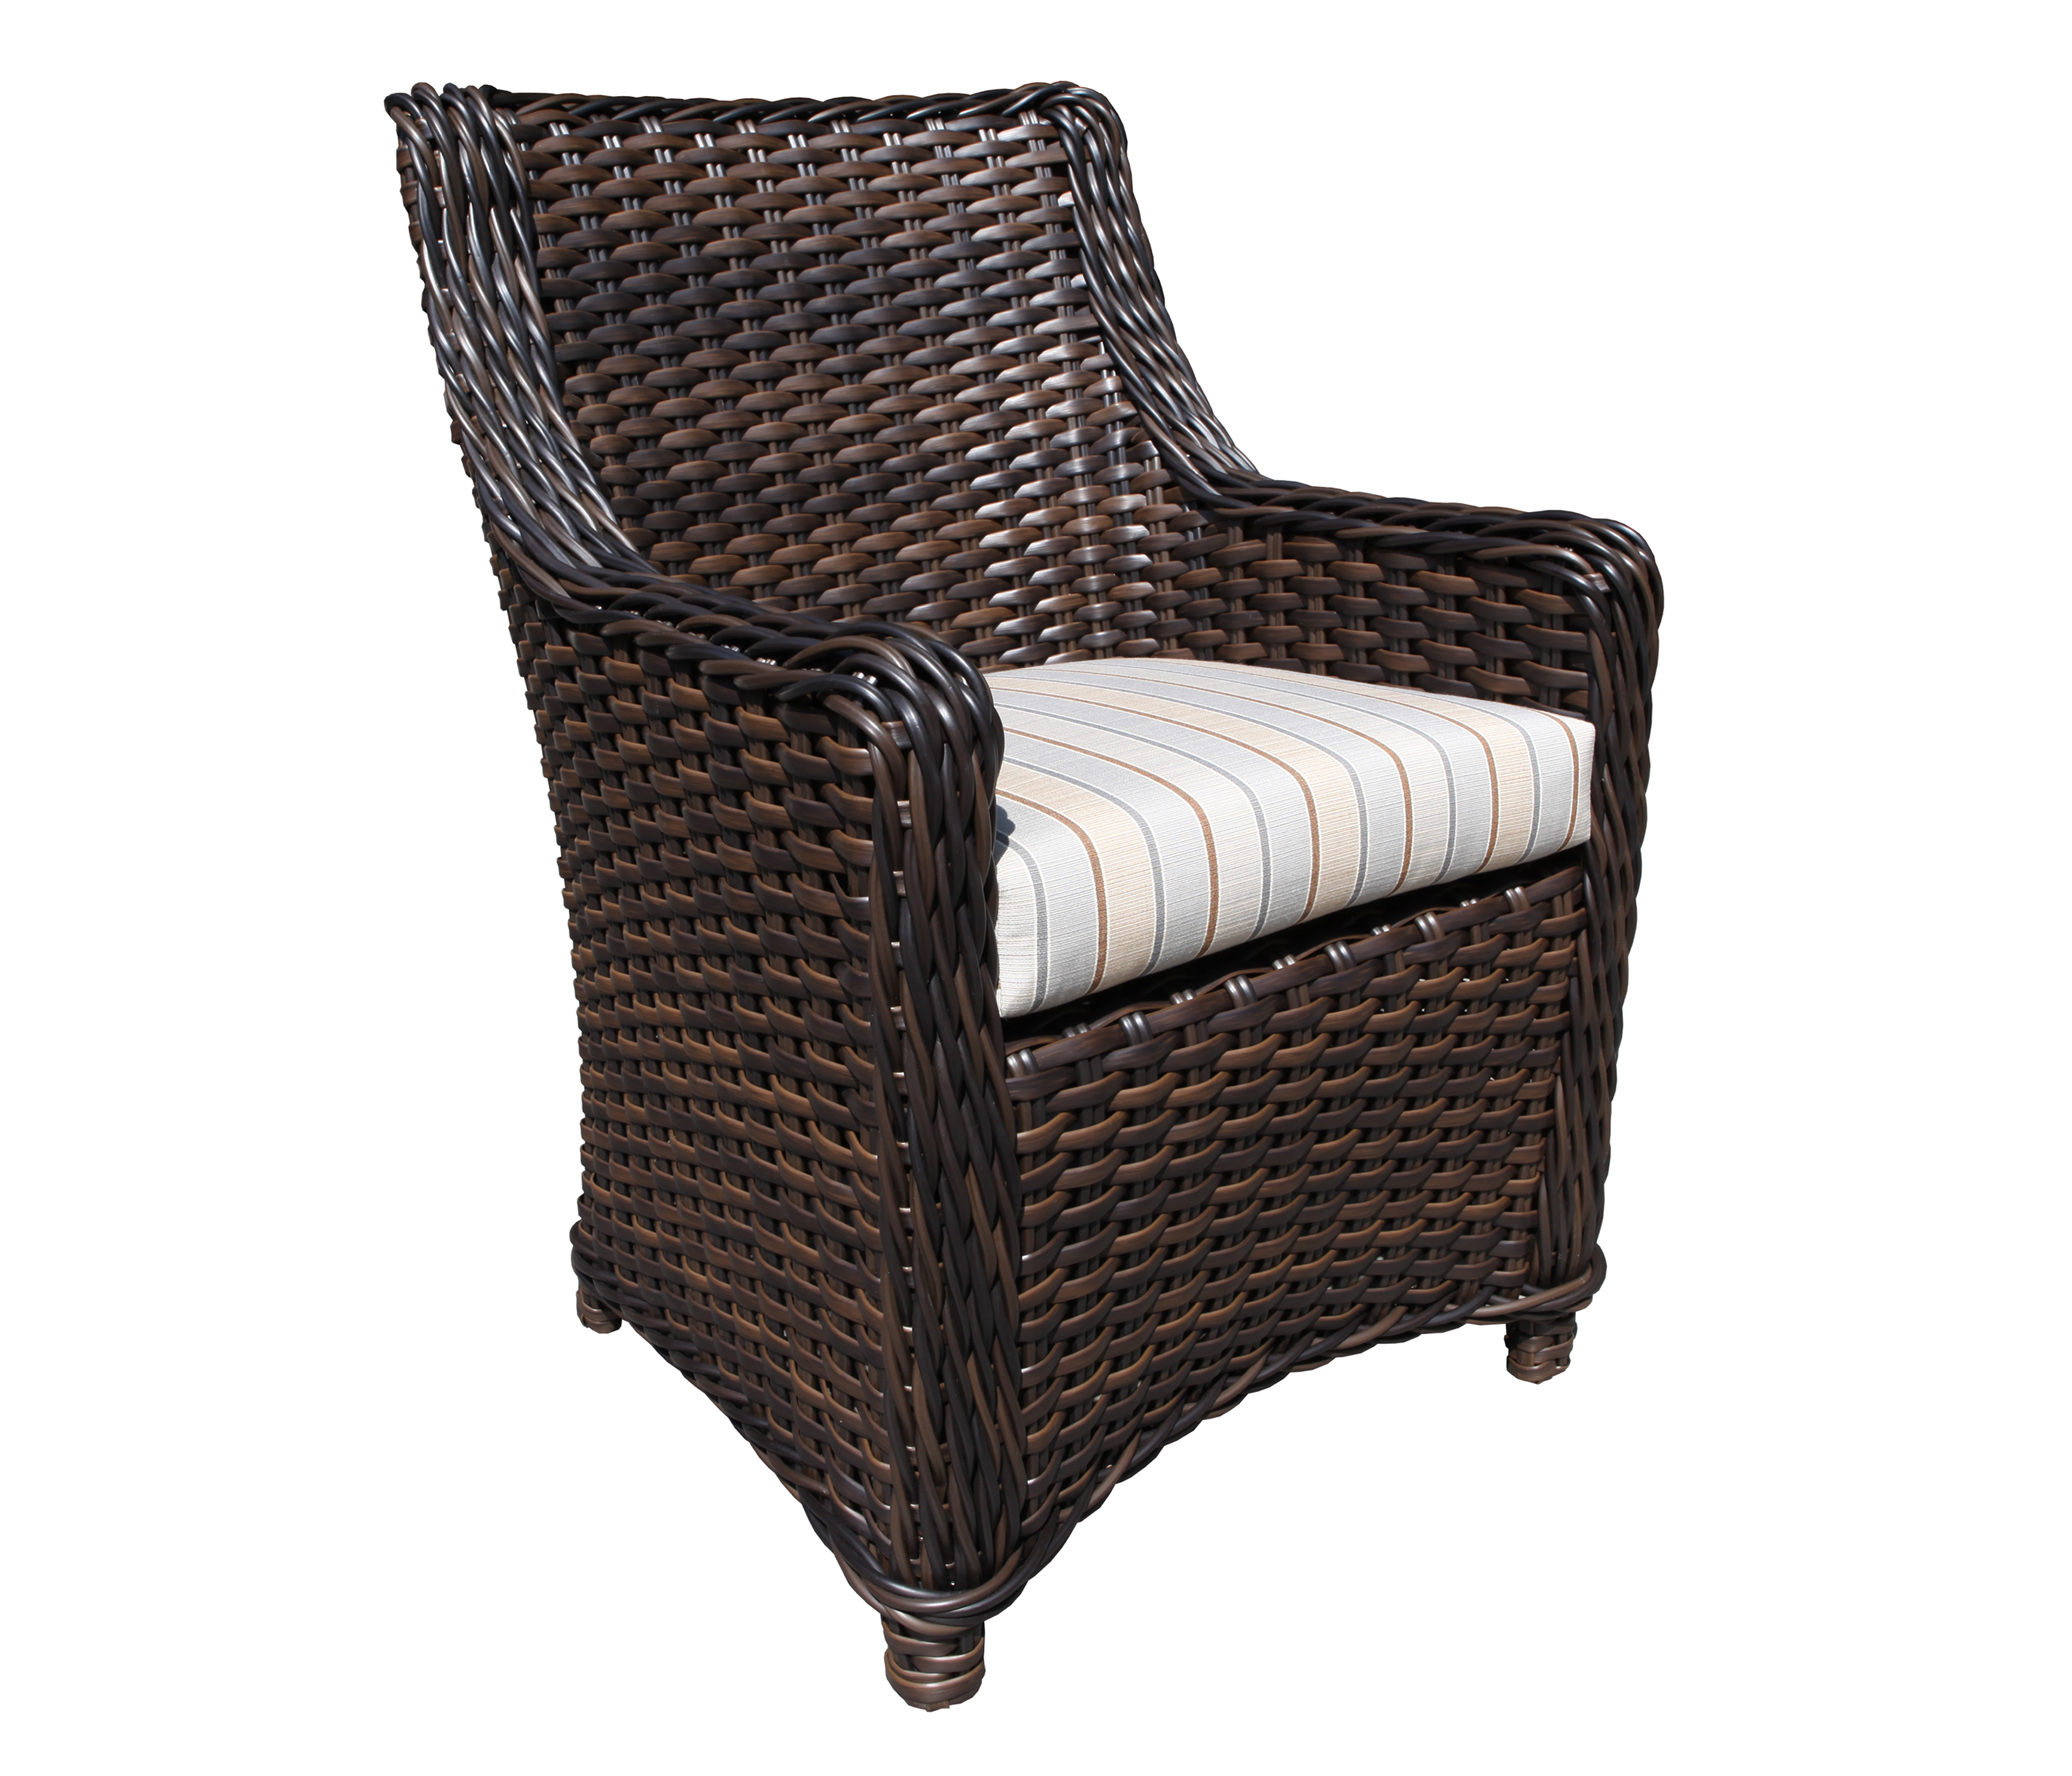 Nevada Wicker Dining Chair Patio Furniture At Sun Country